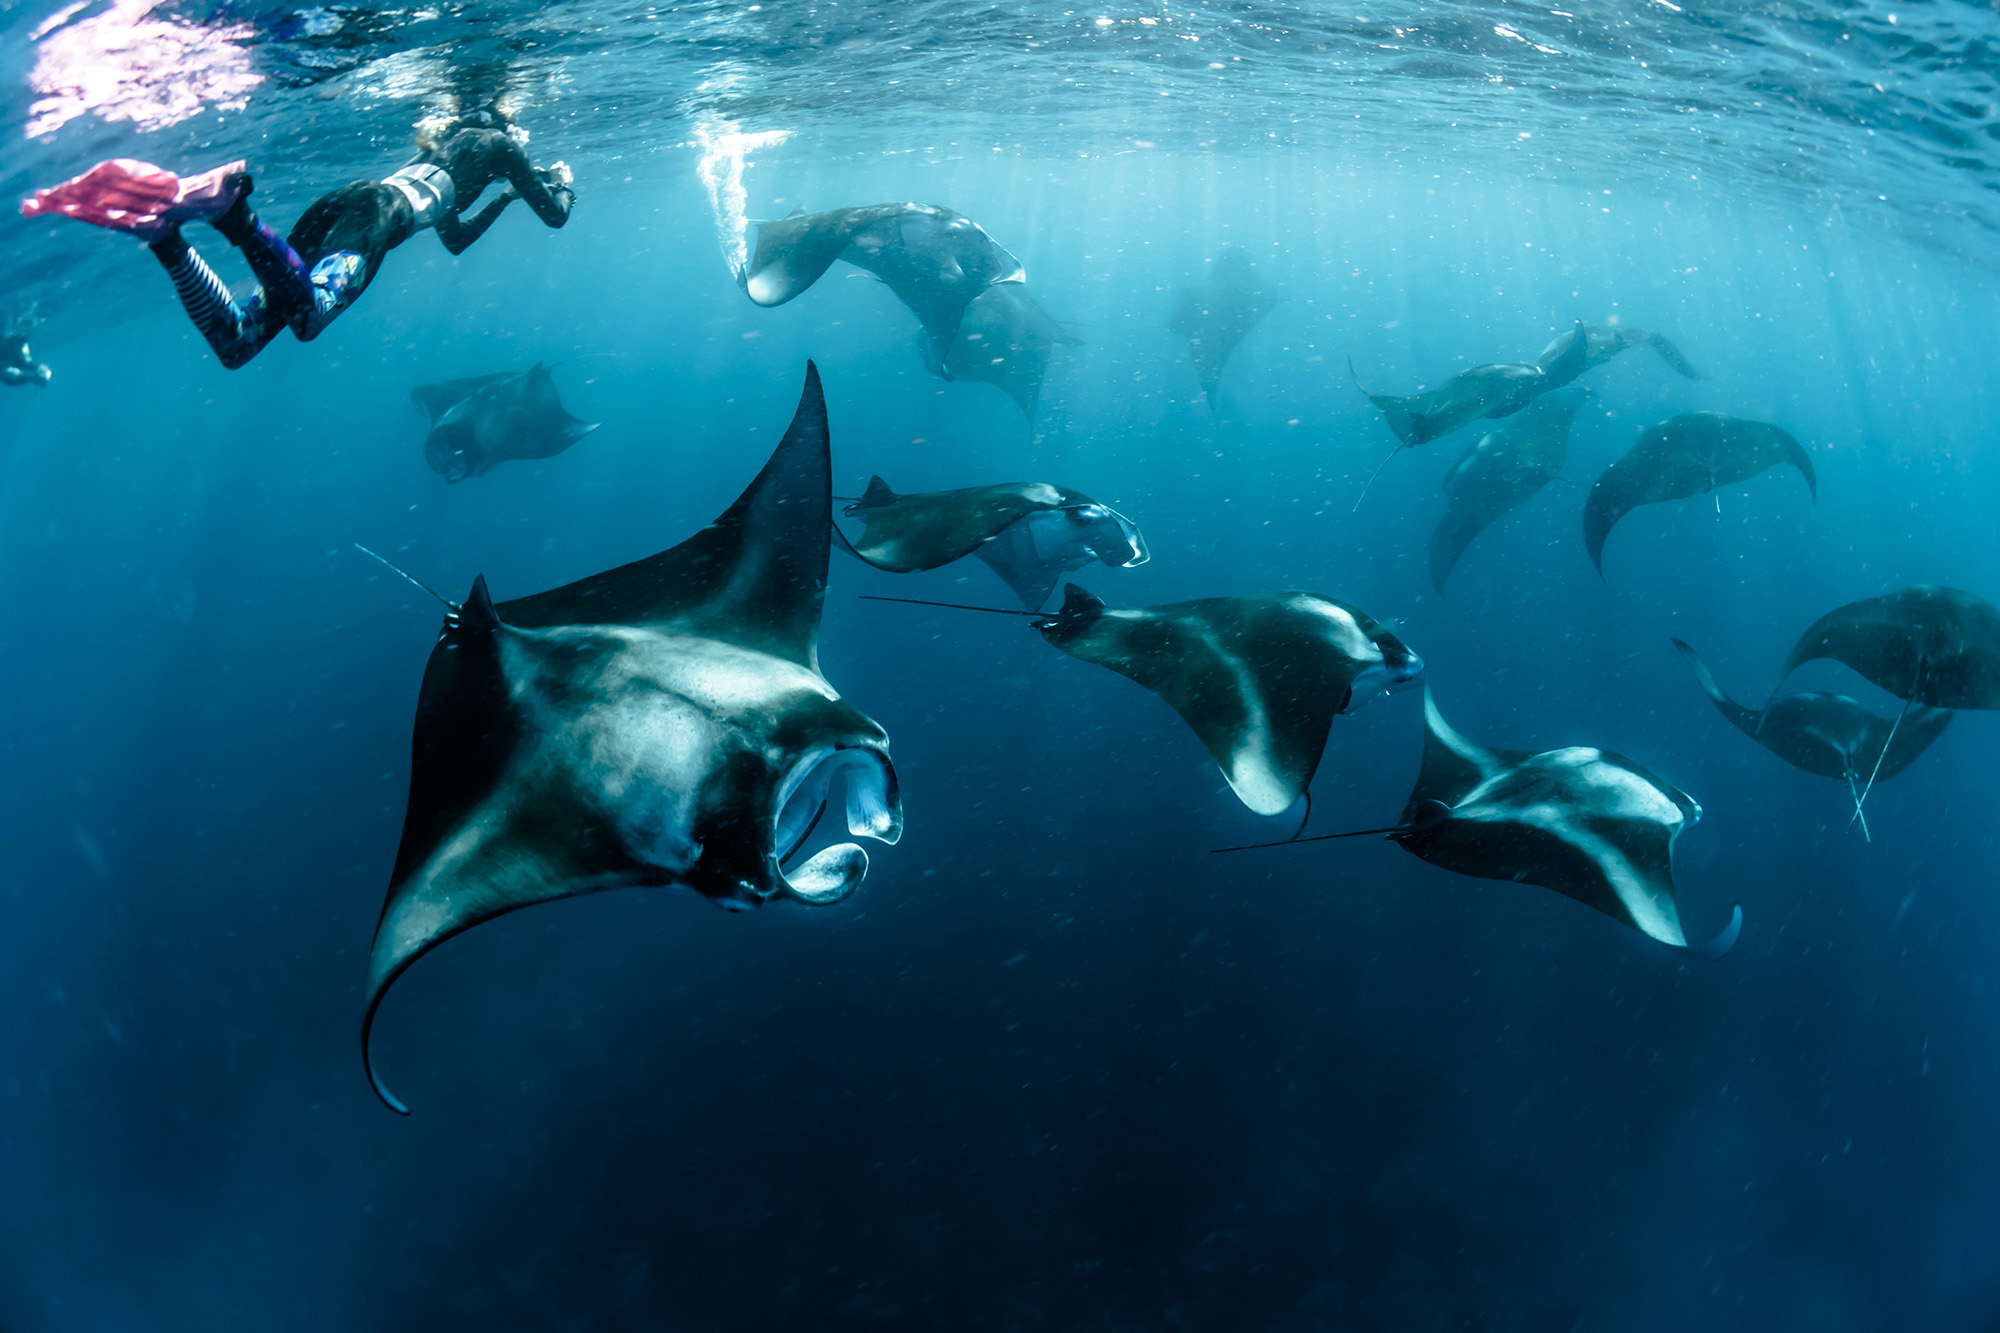 snorkelling with manta rays in Hawaii